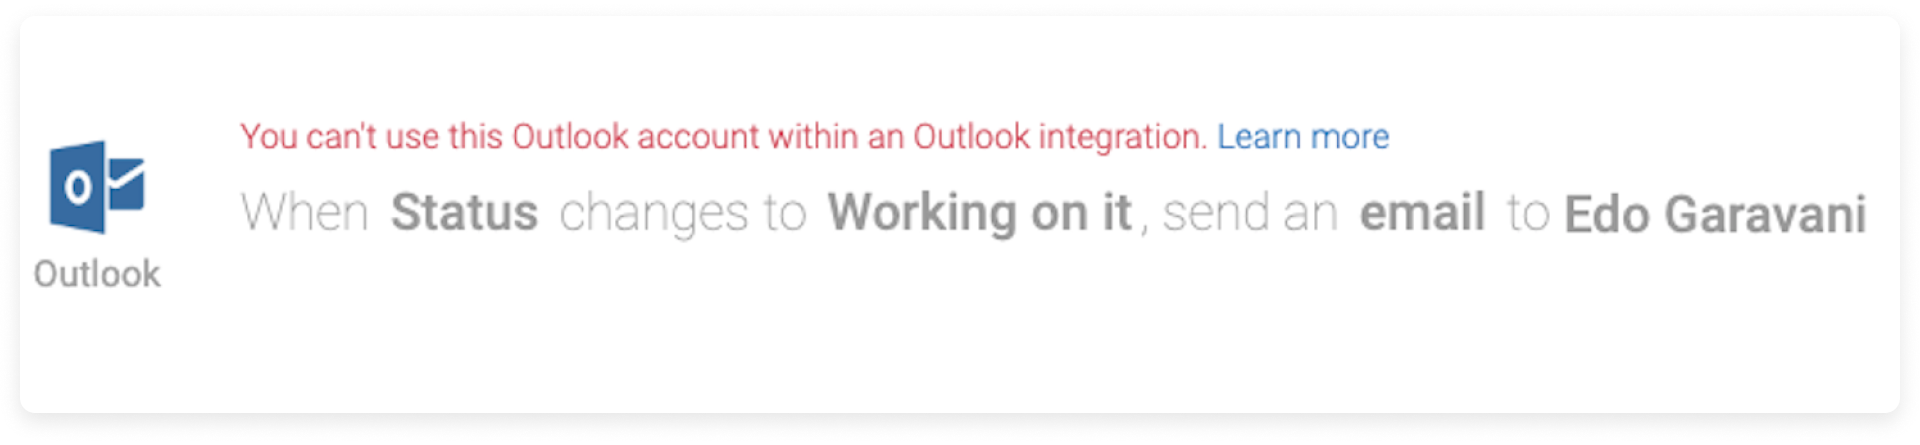 outlook_1.png